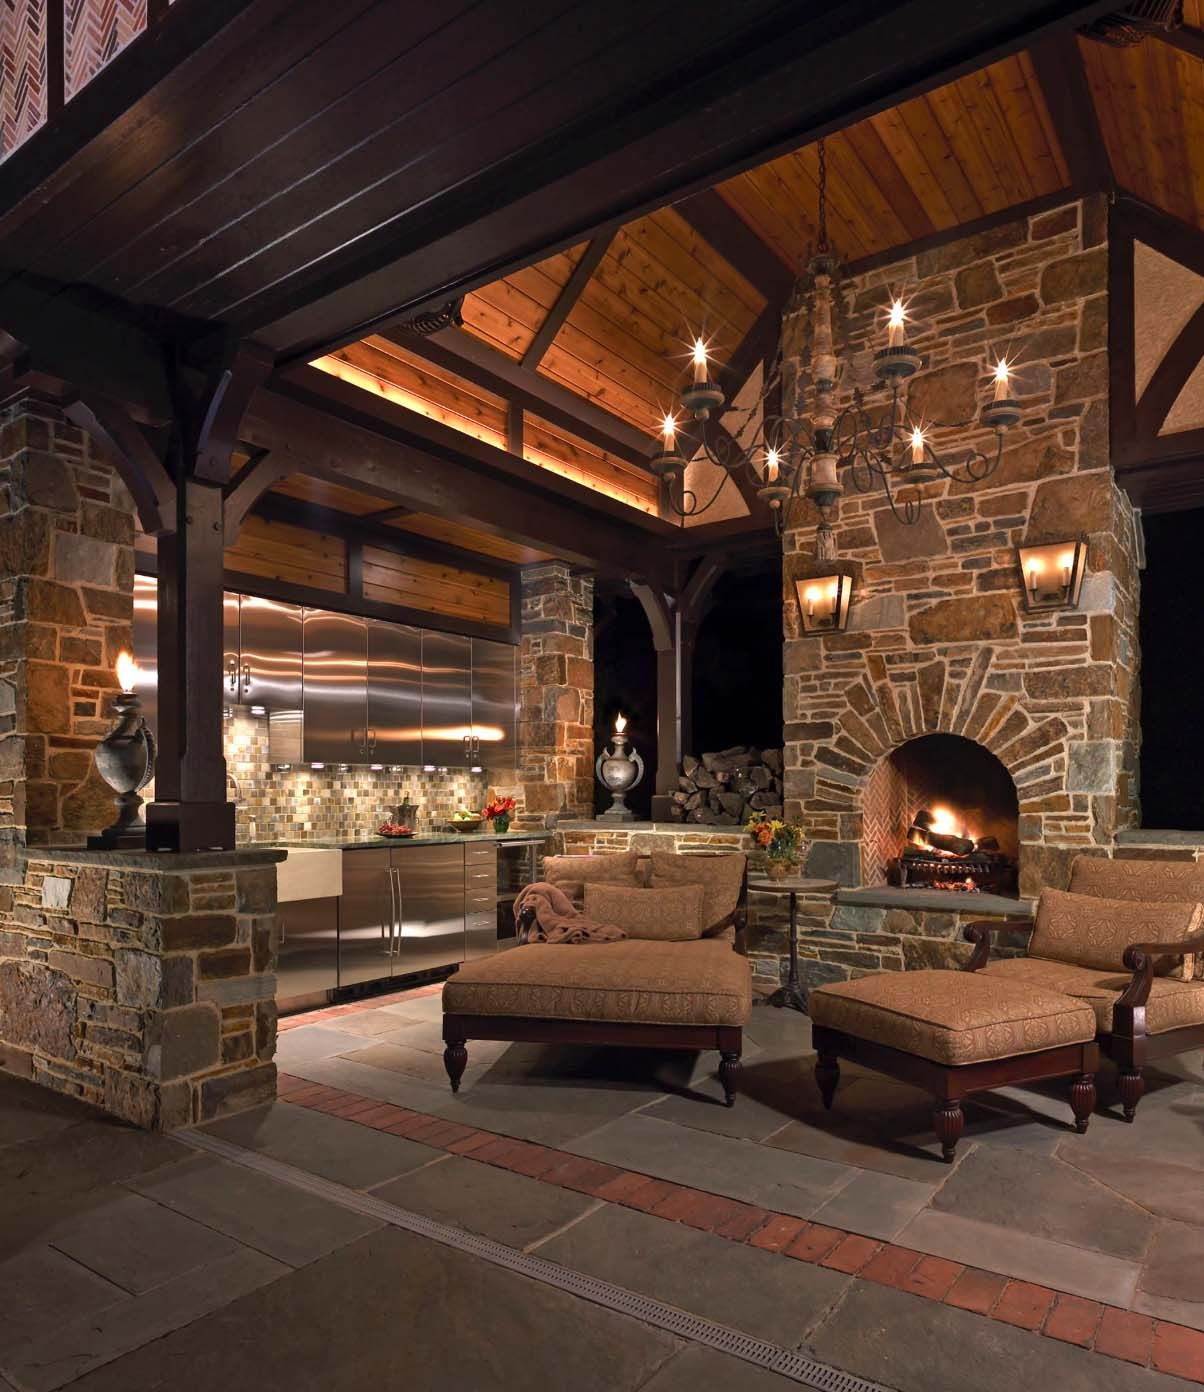 44 Traditional Outdoor Patio Designs To Capture Your Imagination Outdoor Patio Designs Rustic Patio Patio Design Outdoor patio living spaces